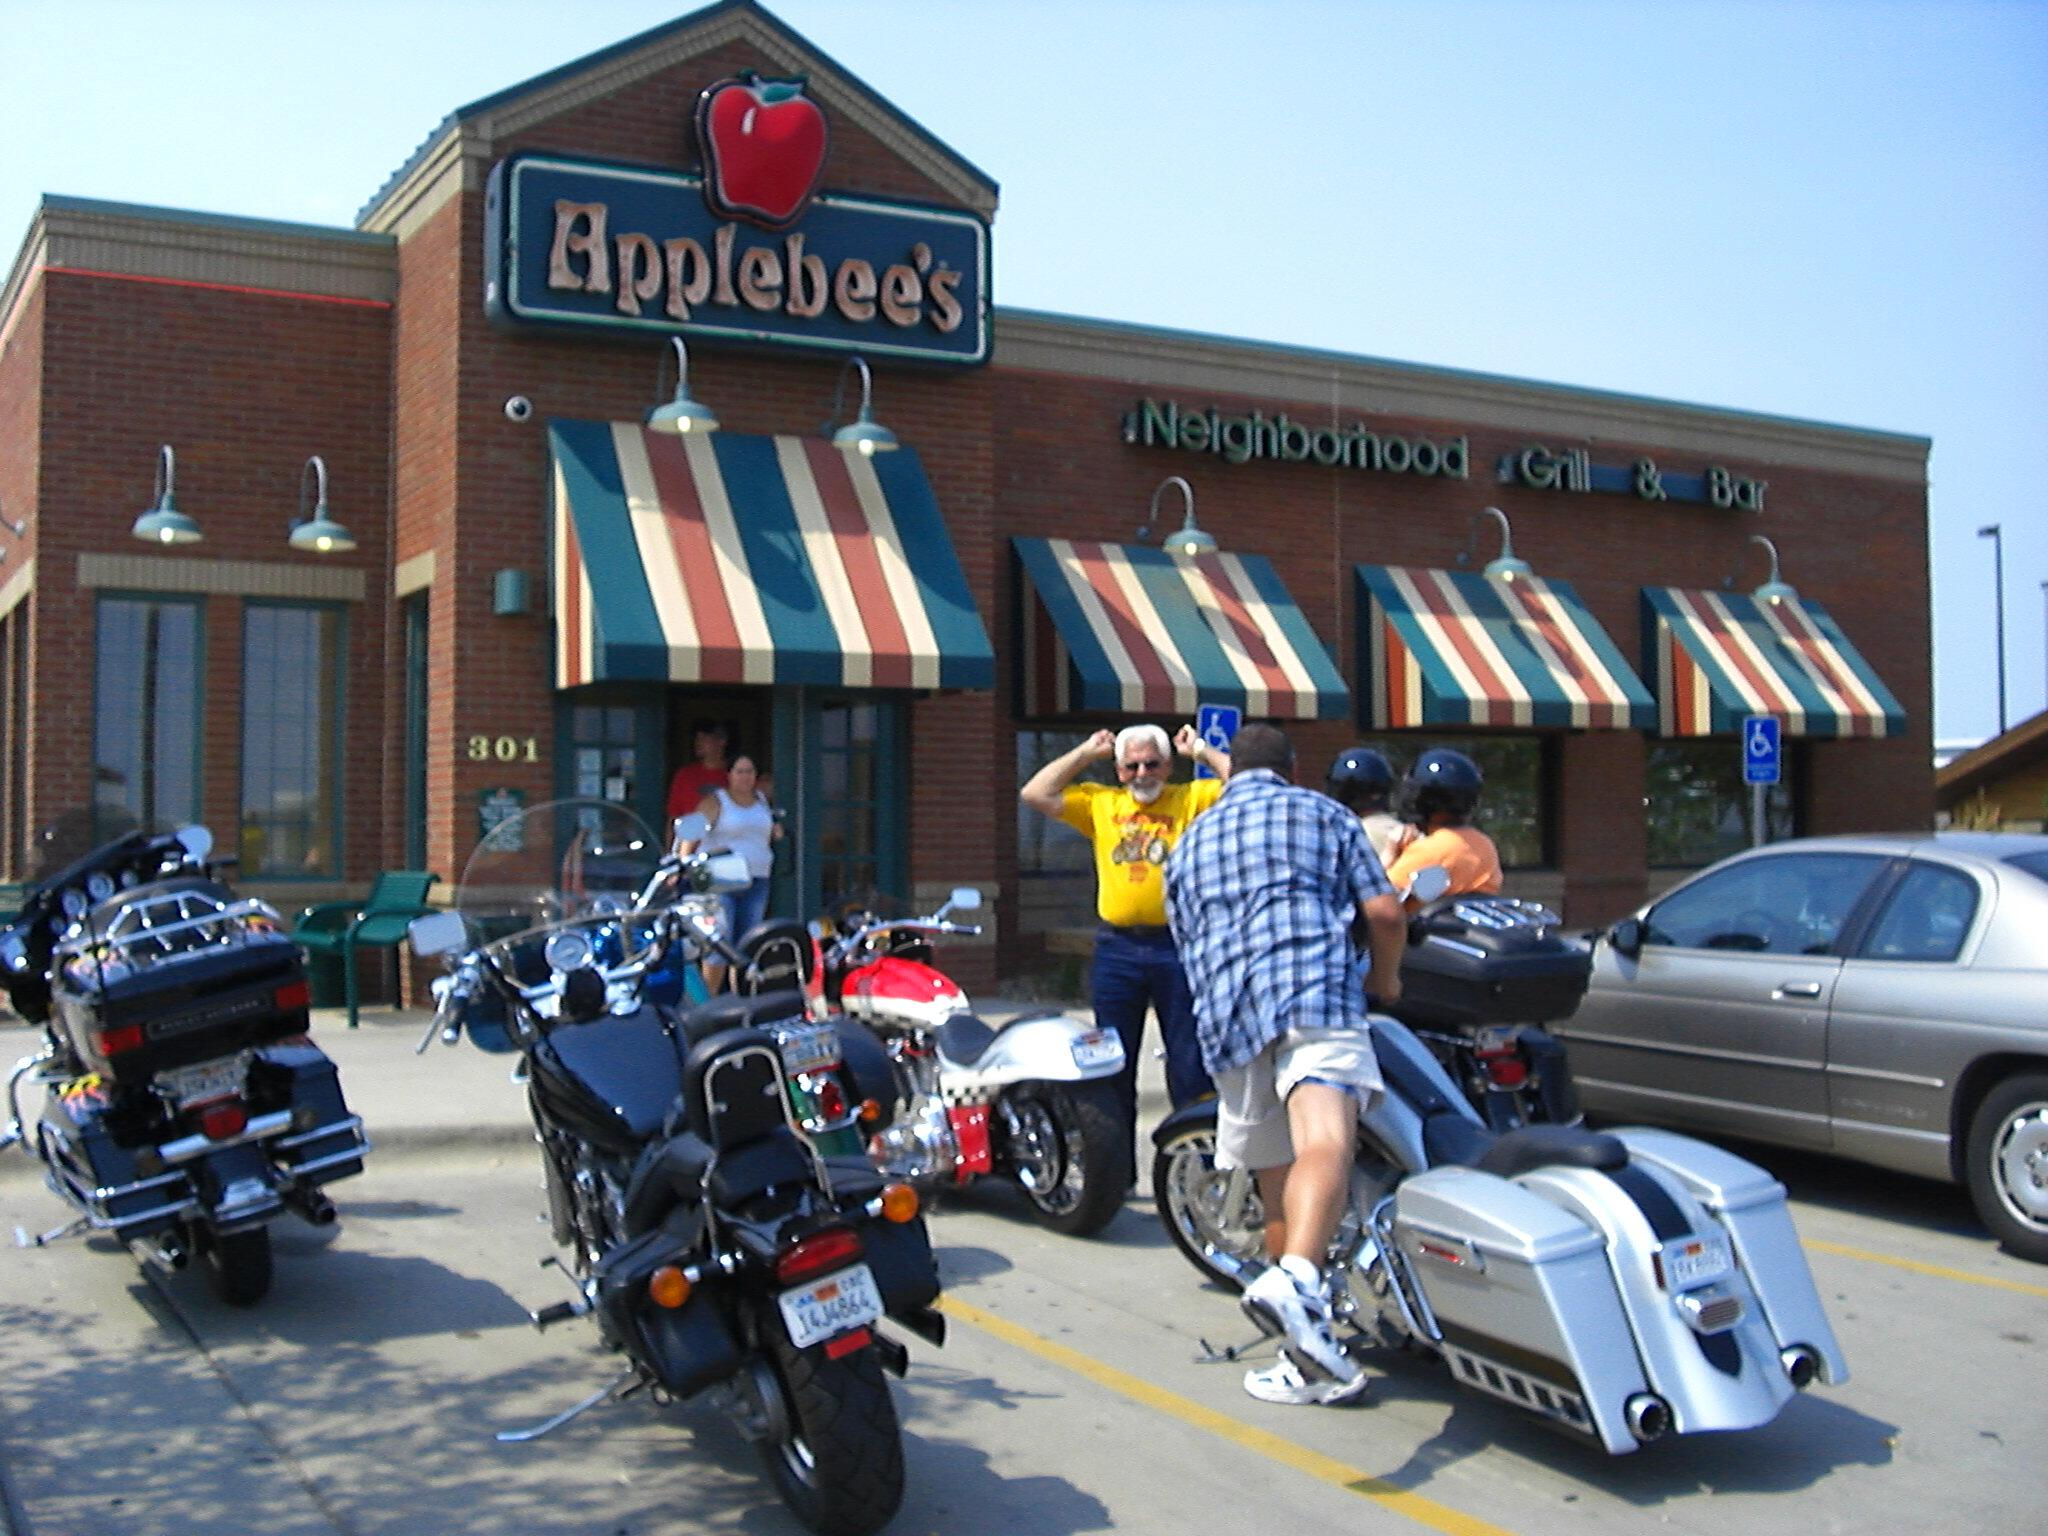 One of the Hamsters poses for me at Applebees Spearfish South Dakota Sturgis Rally